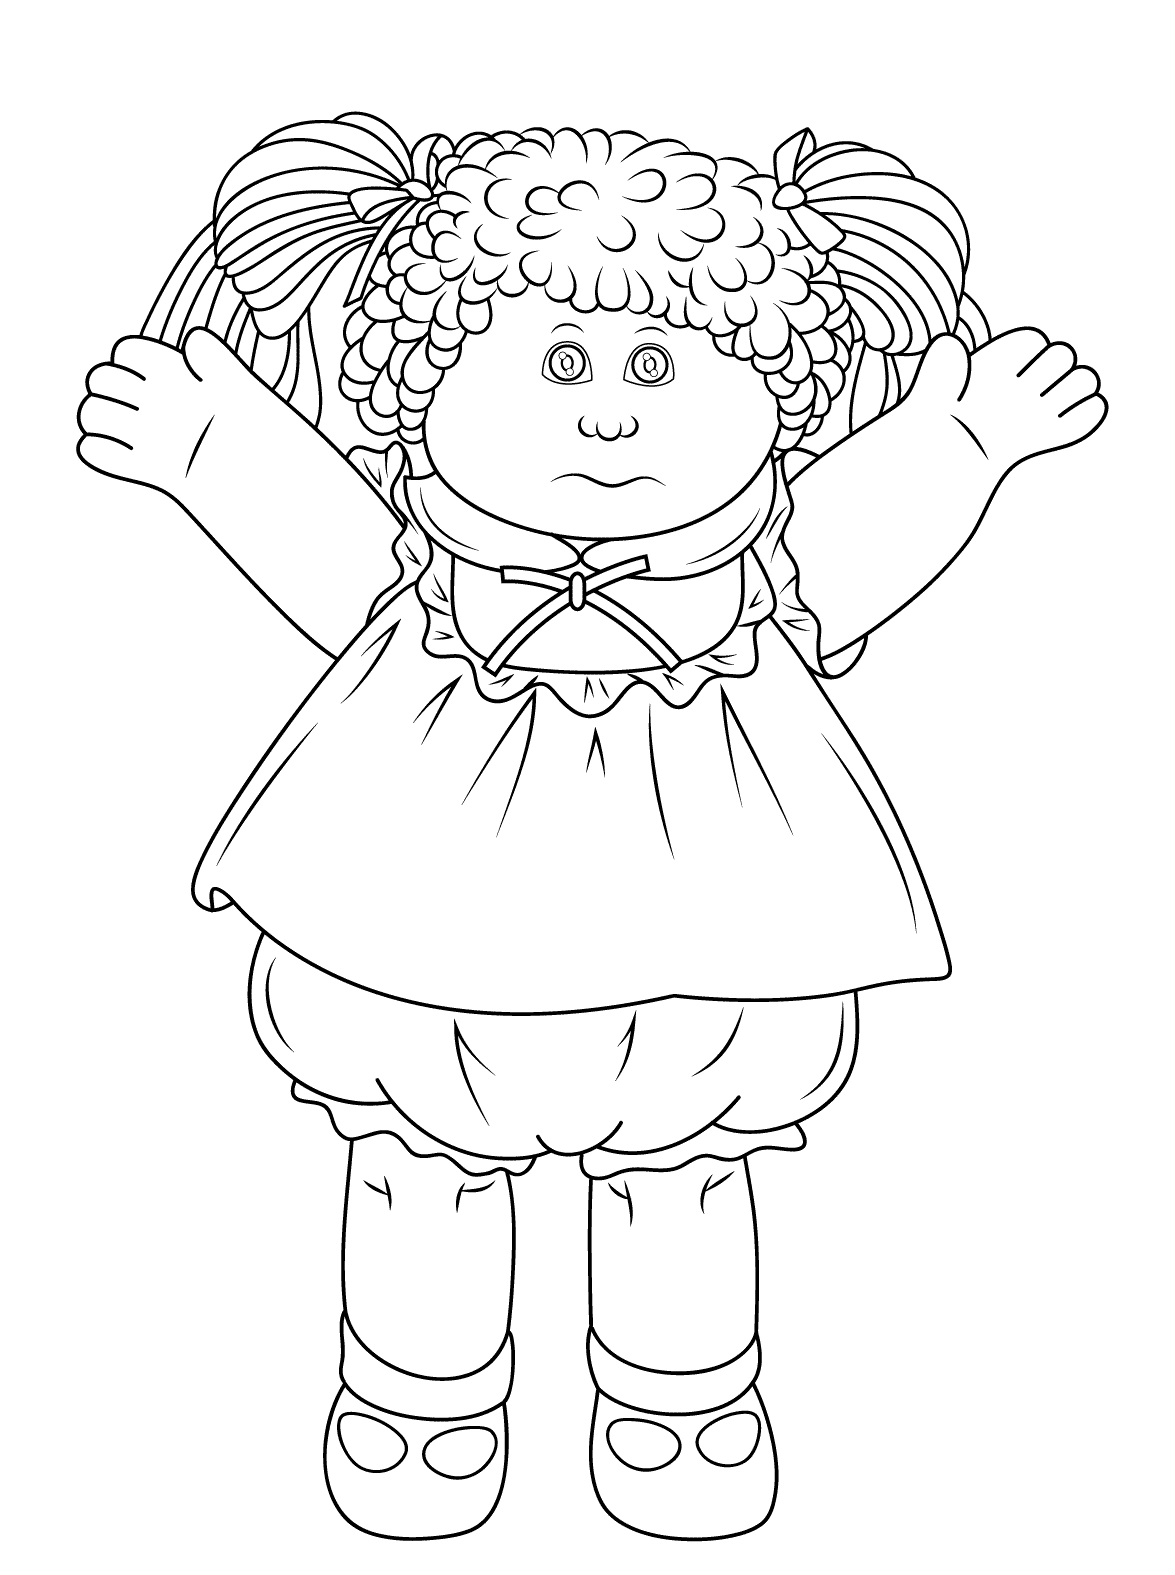 Doll Coloring Pages Best Coloring